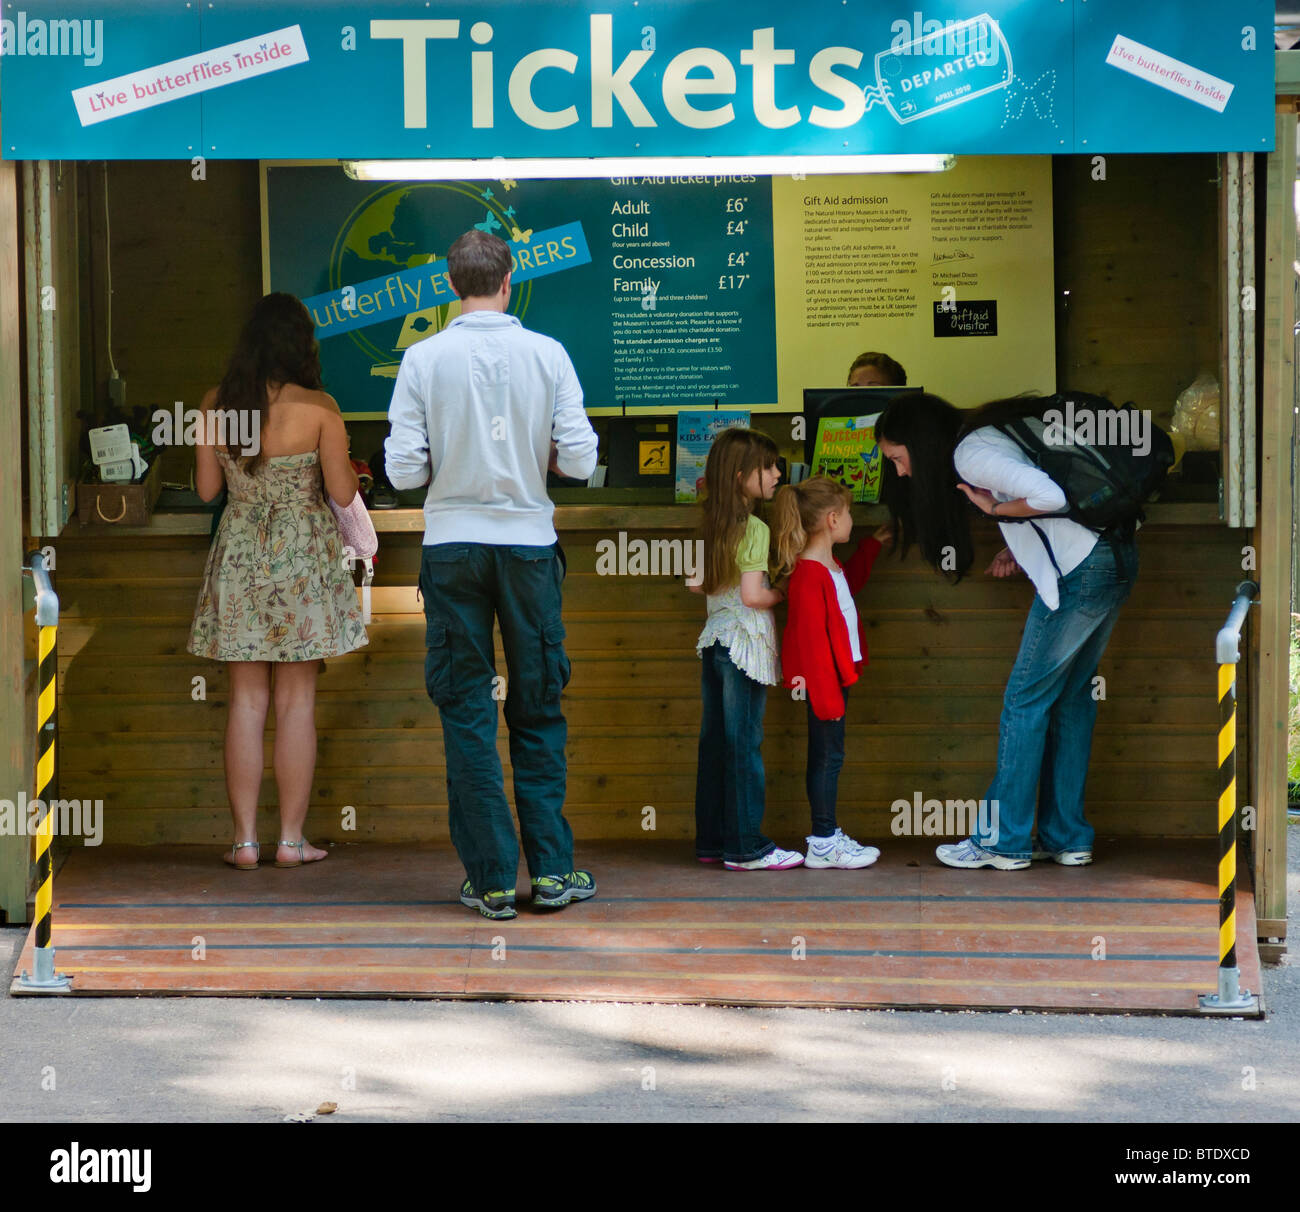 The Ticket office for 'Butterfly Explorers' at the Natural History Museum, London, UK - Stock Image